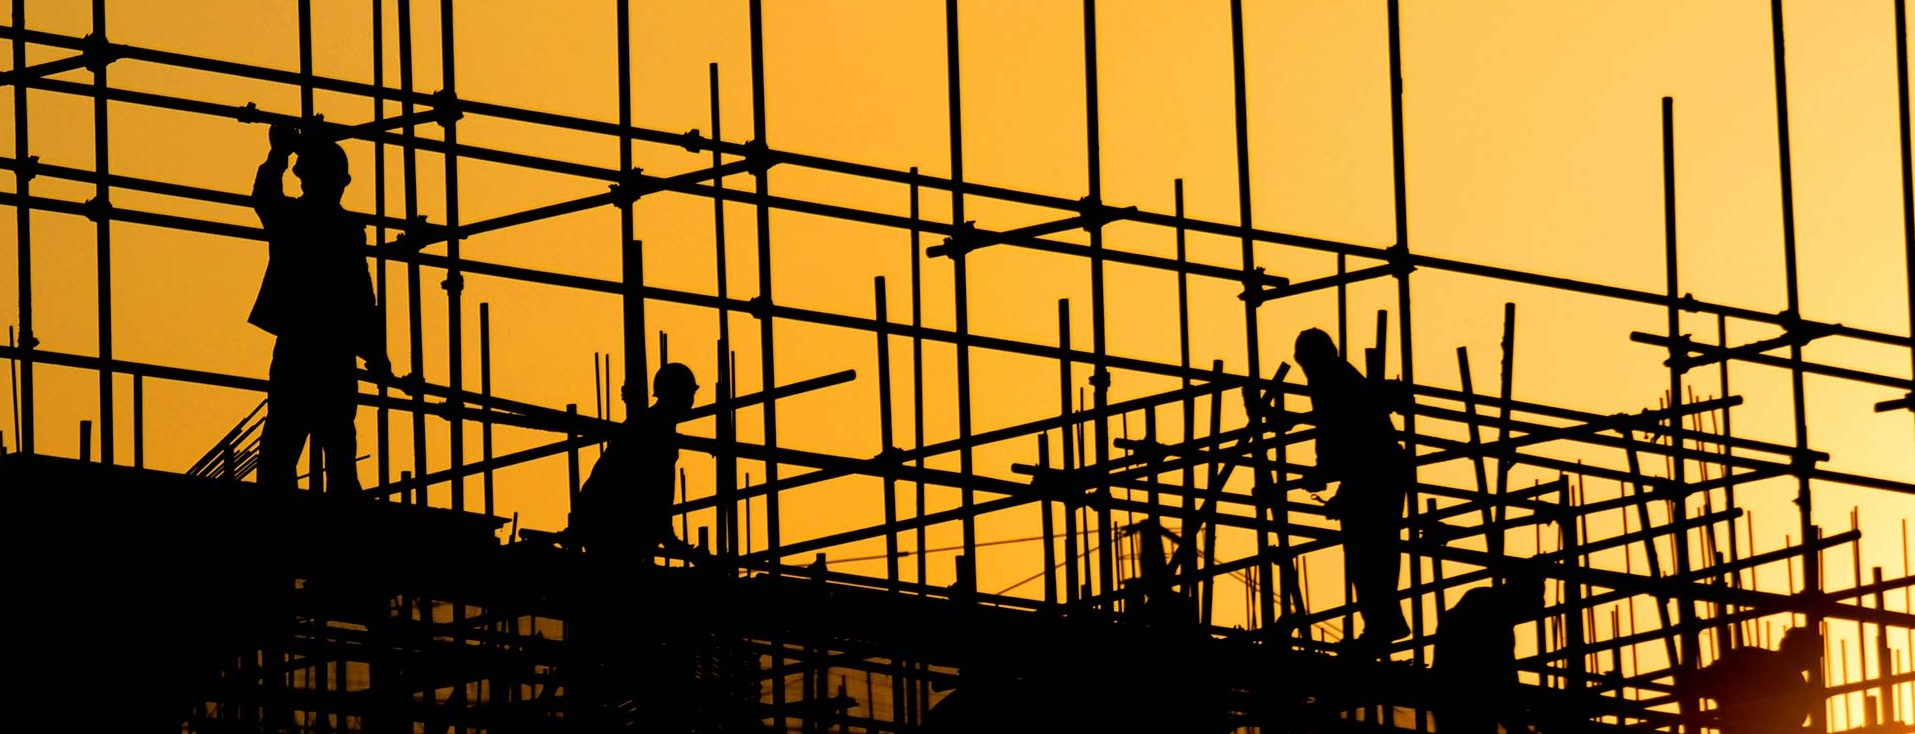 Why Not Prequalifying Subcontractors is Still Risky Business